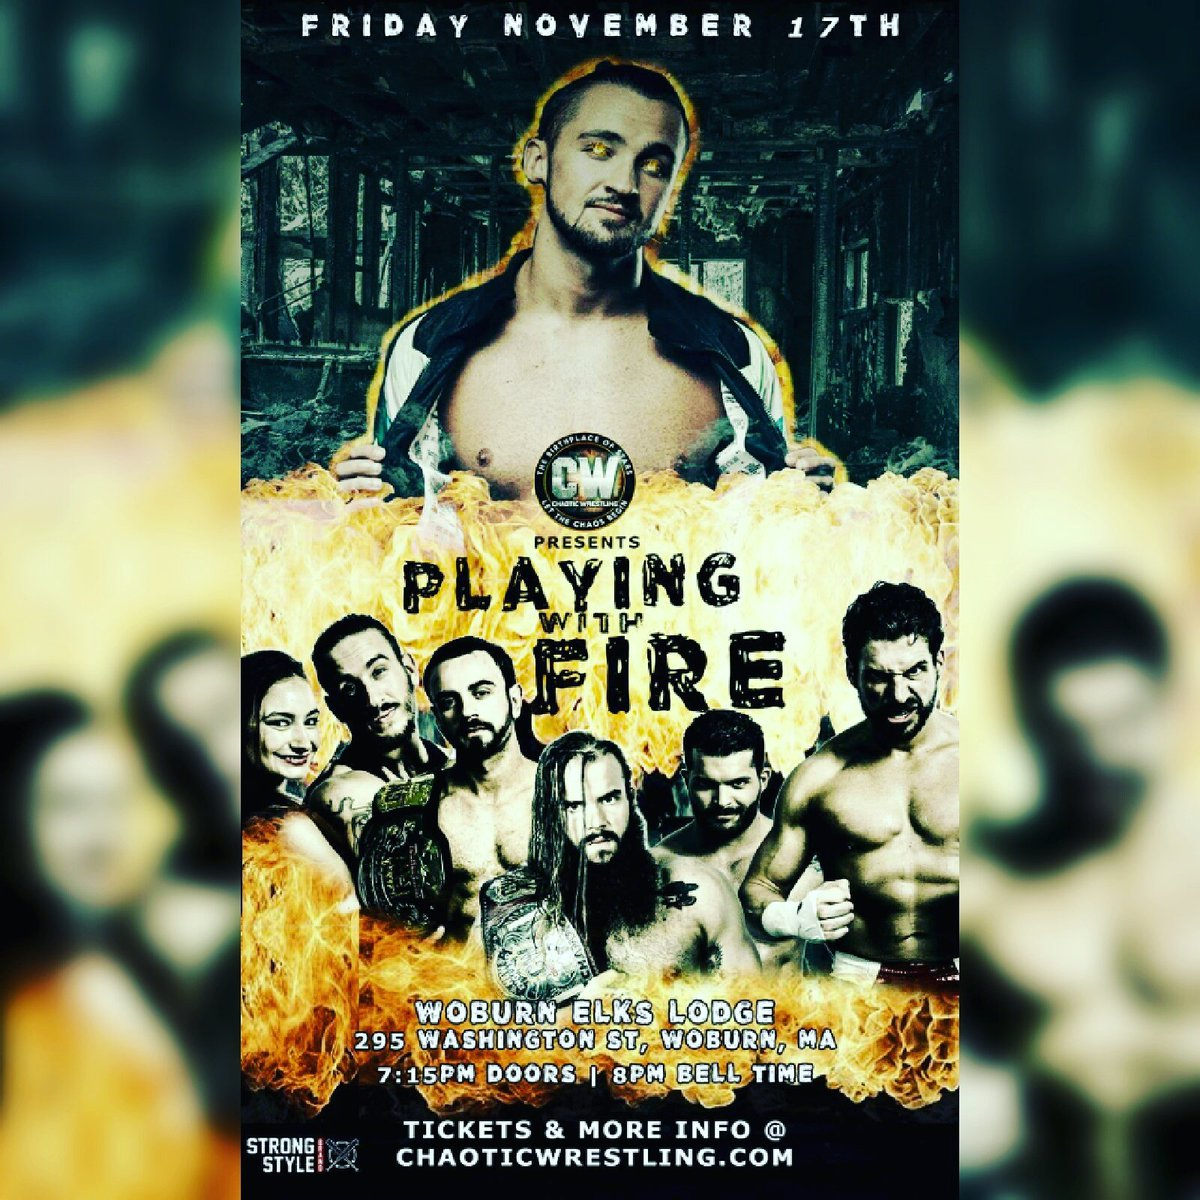 ...Next stop: Woburn, MA TONIGHT for @ChaoticWrestlin&#39;s #PlayingWithFire. : @StrongStyleB #LetTheChaosBegin #CWWoburn #SeniorOfficial #Referee <br>http://pic.twitter.com/jeecNFIdbG